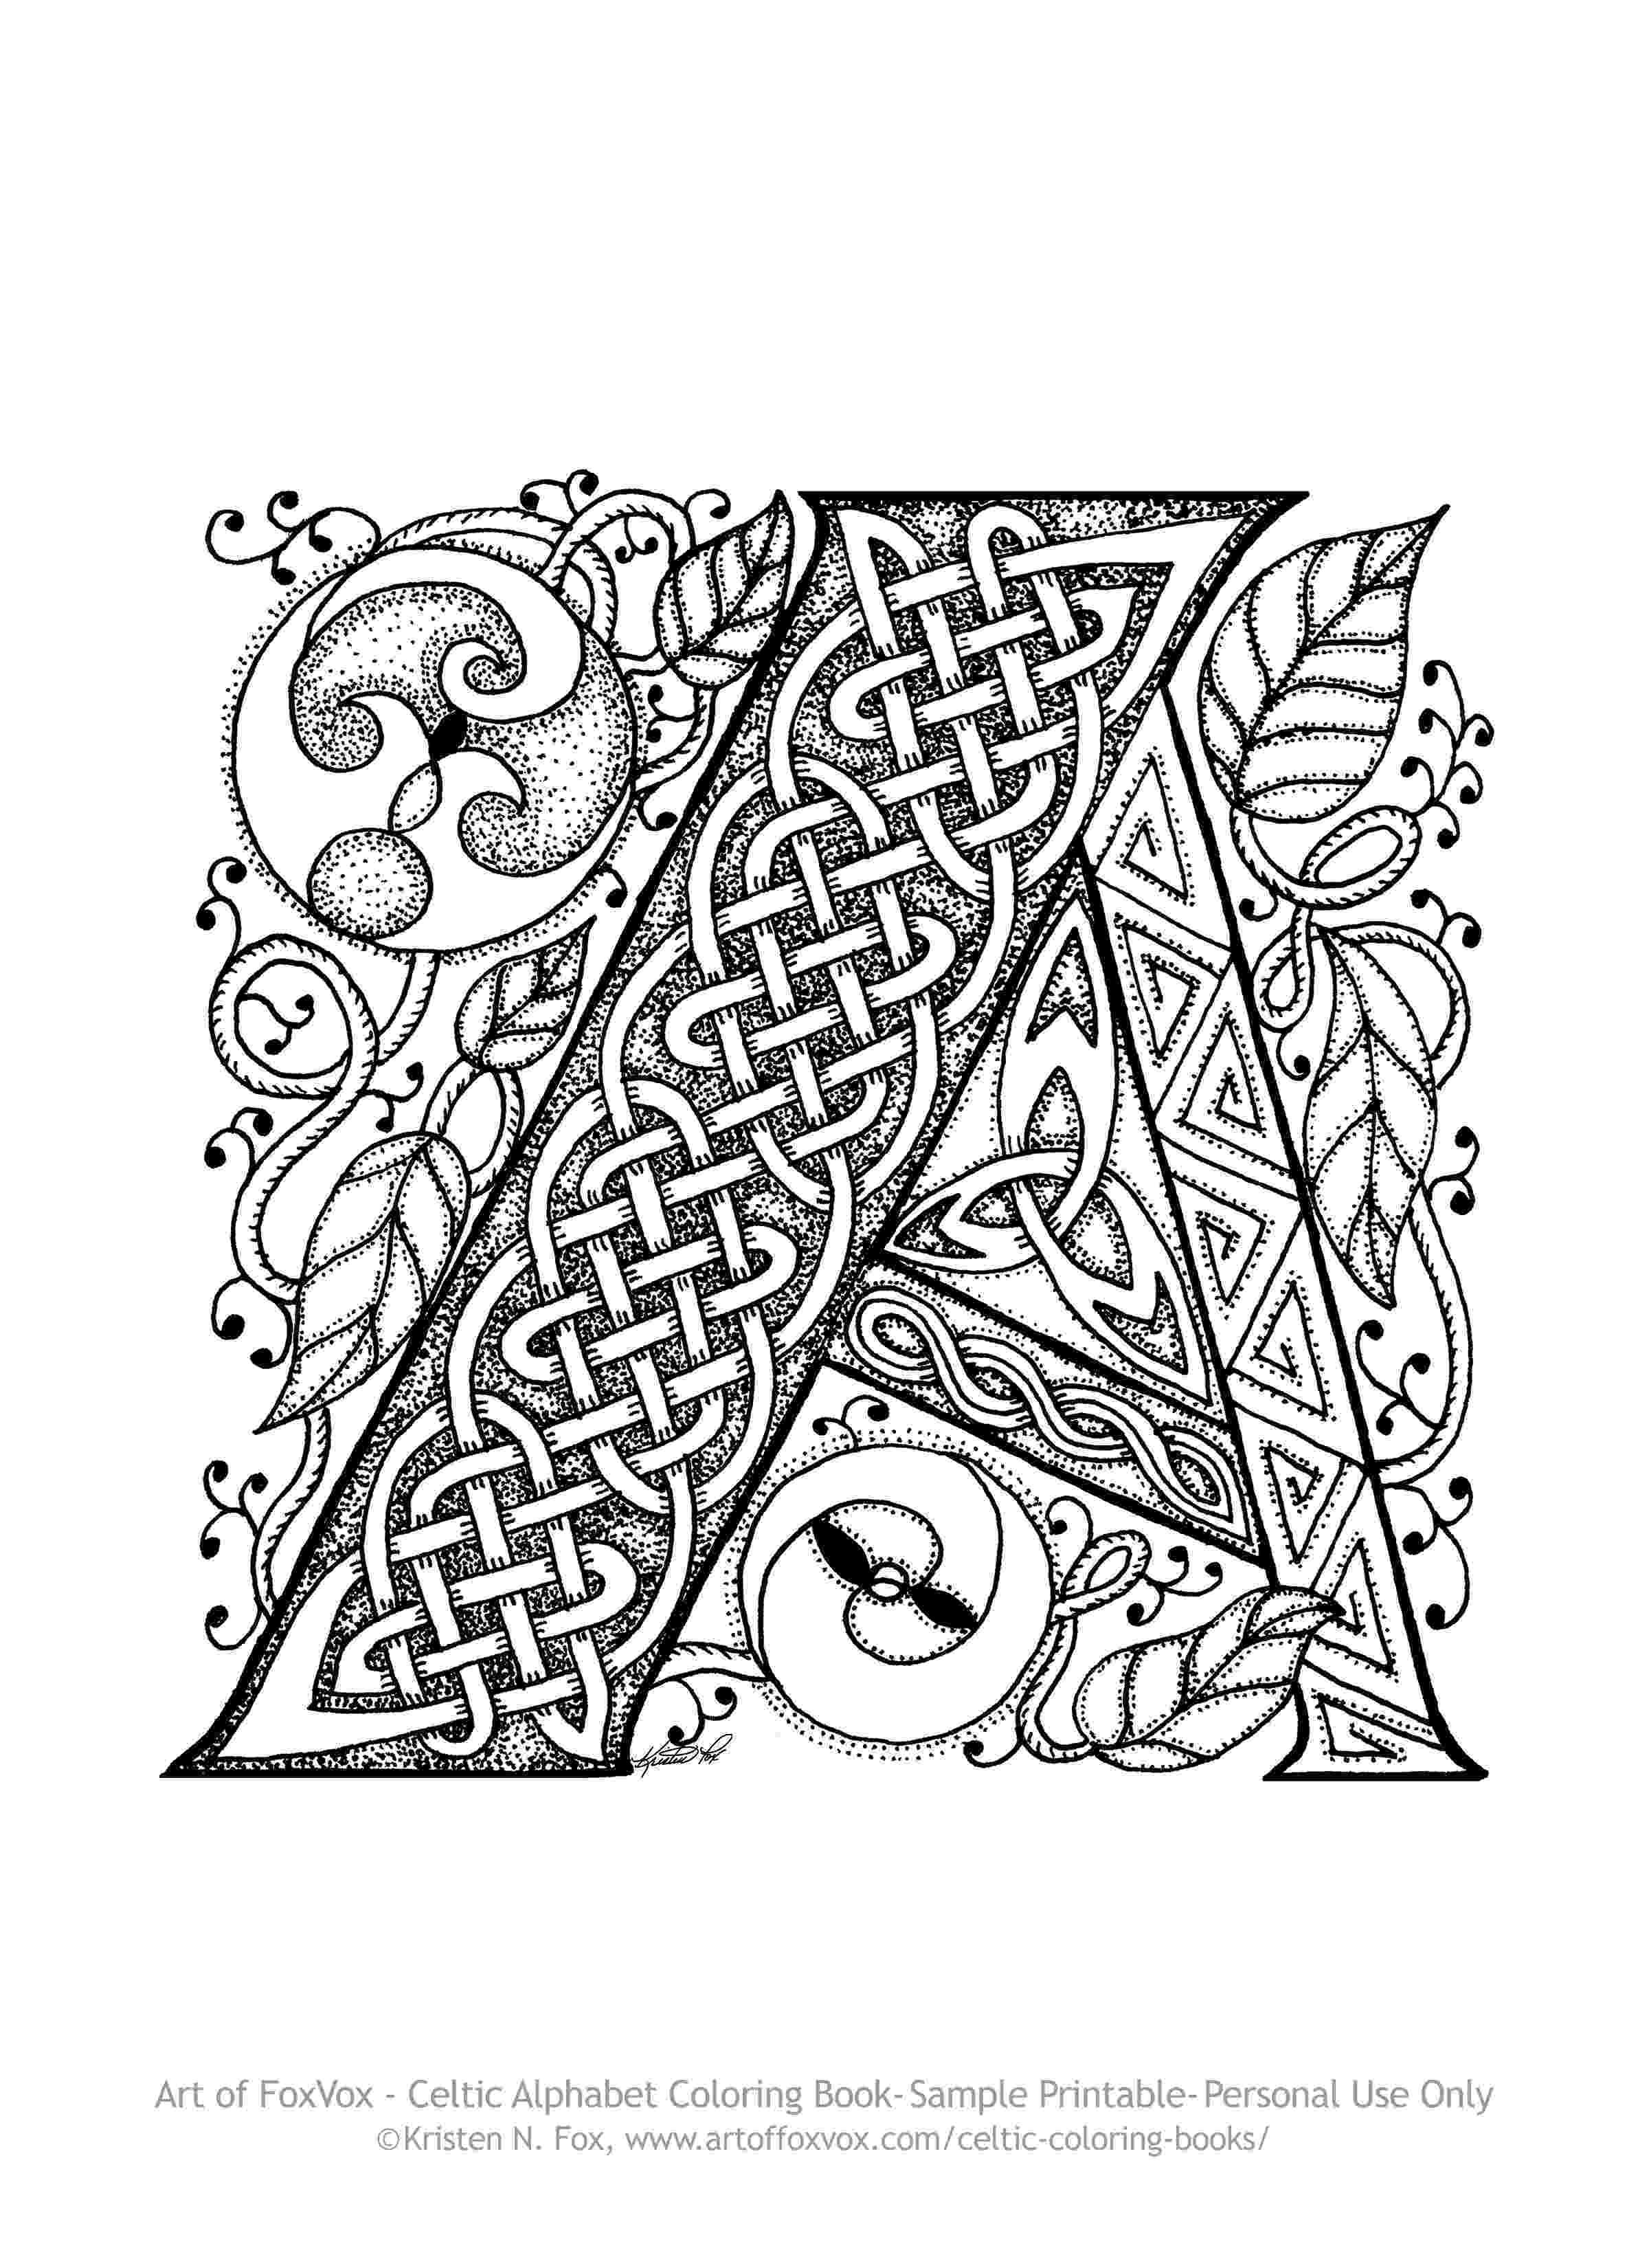 coloring pages for adults letter 100 best alphabet coloring images on pinterest coloring for letter coloring adults pages